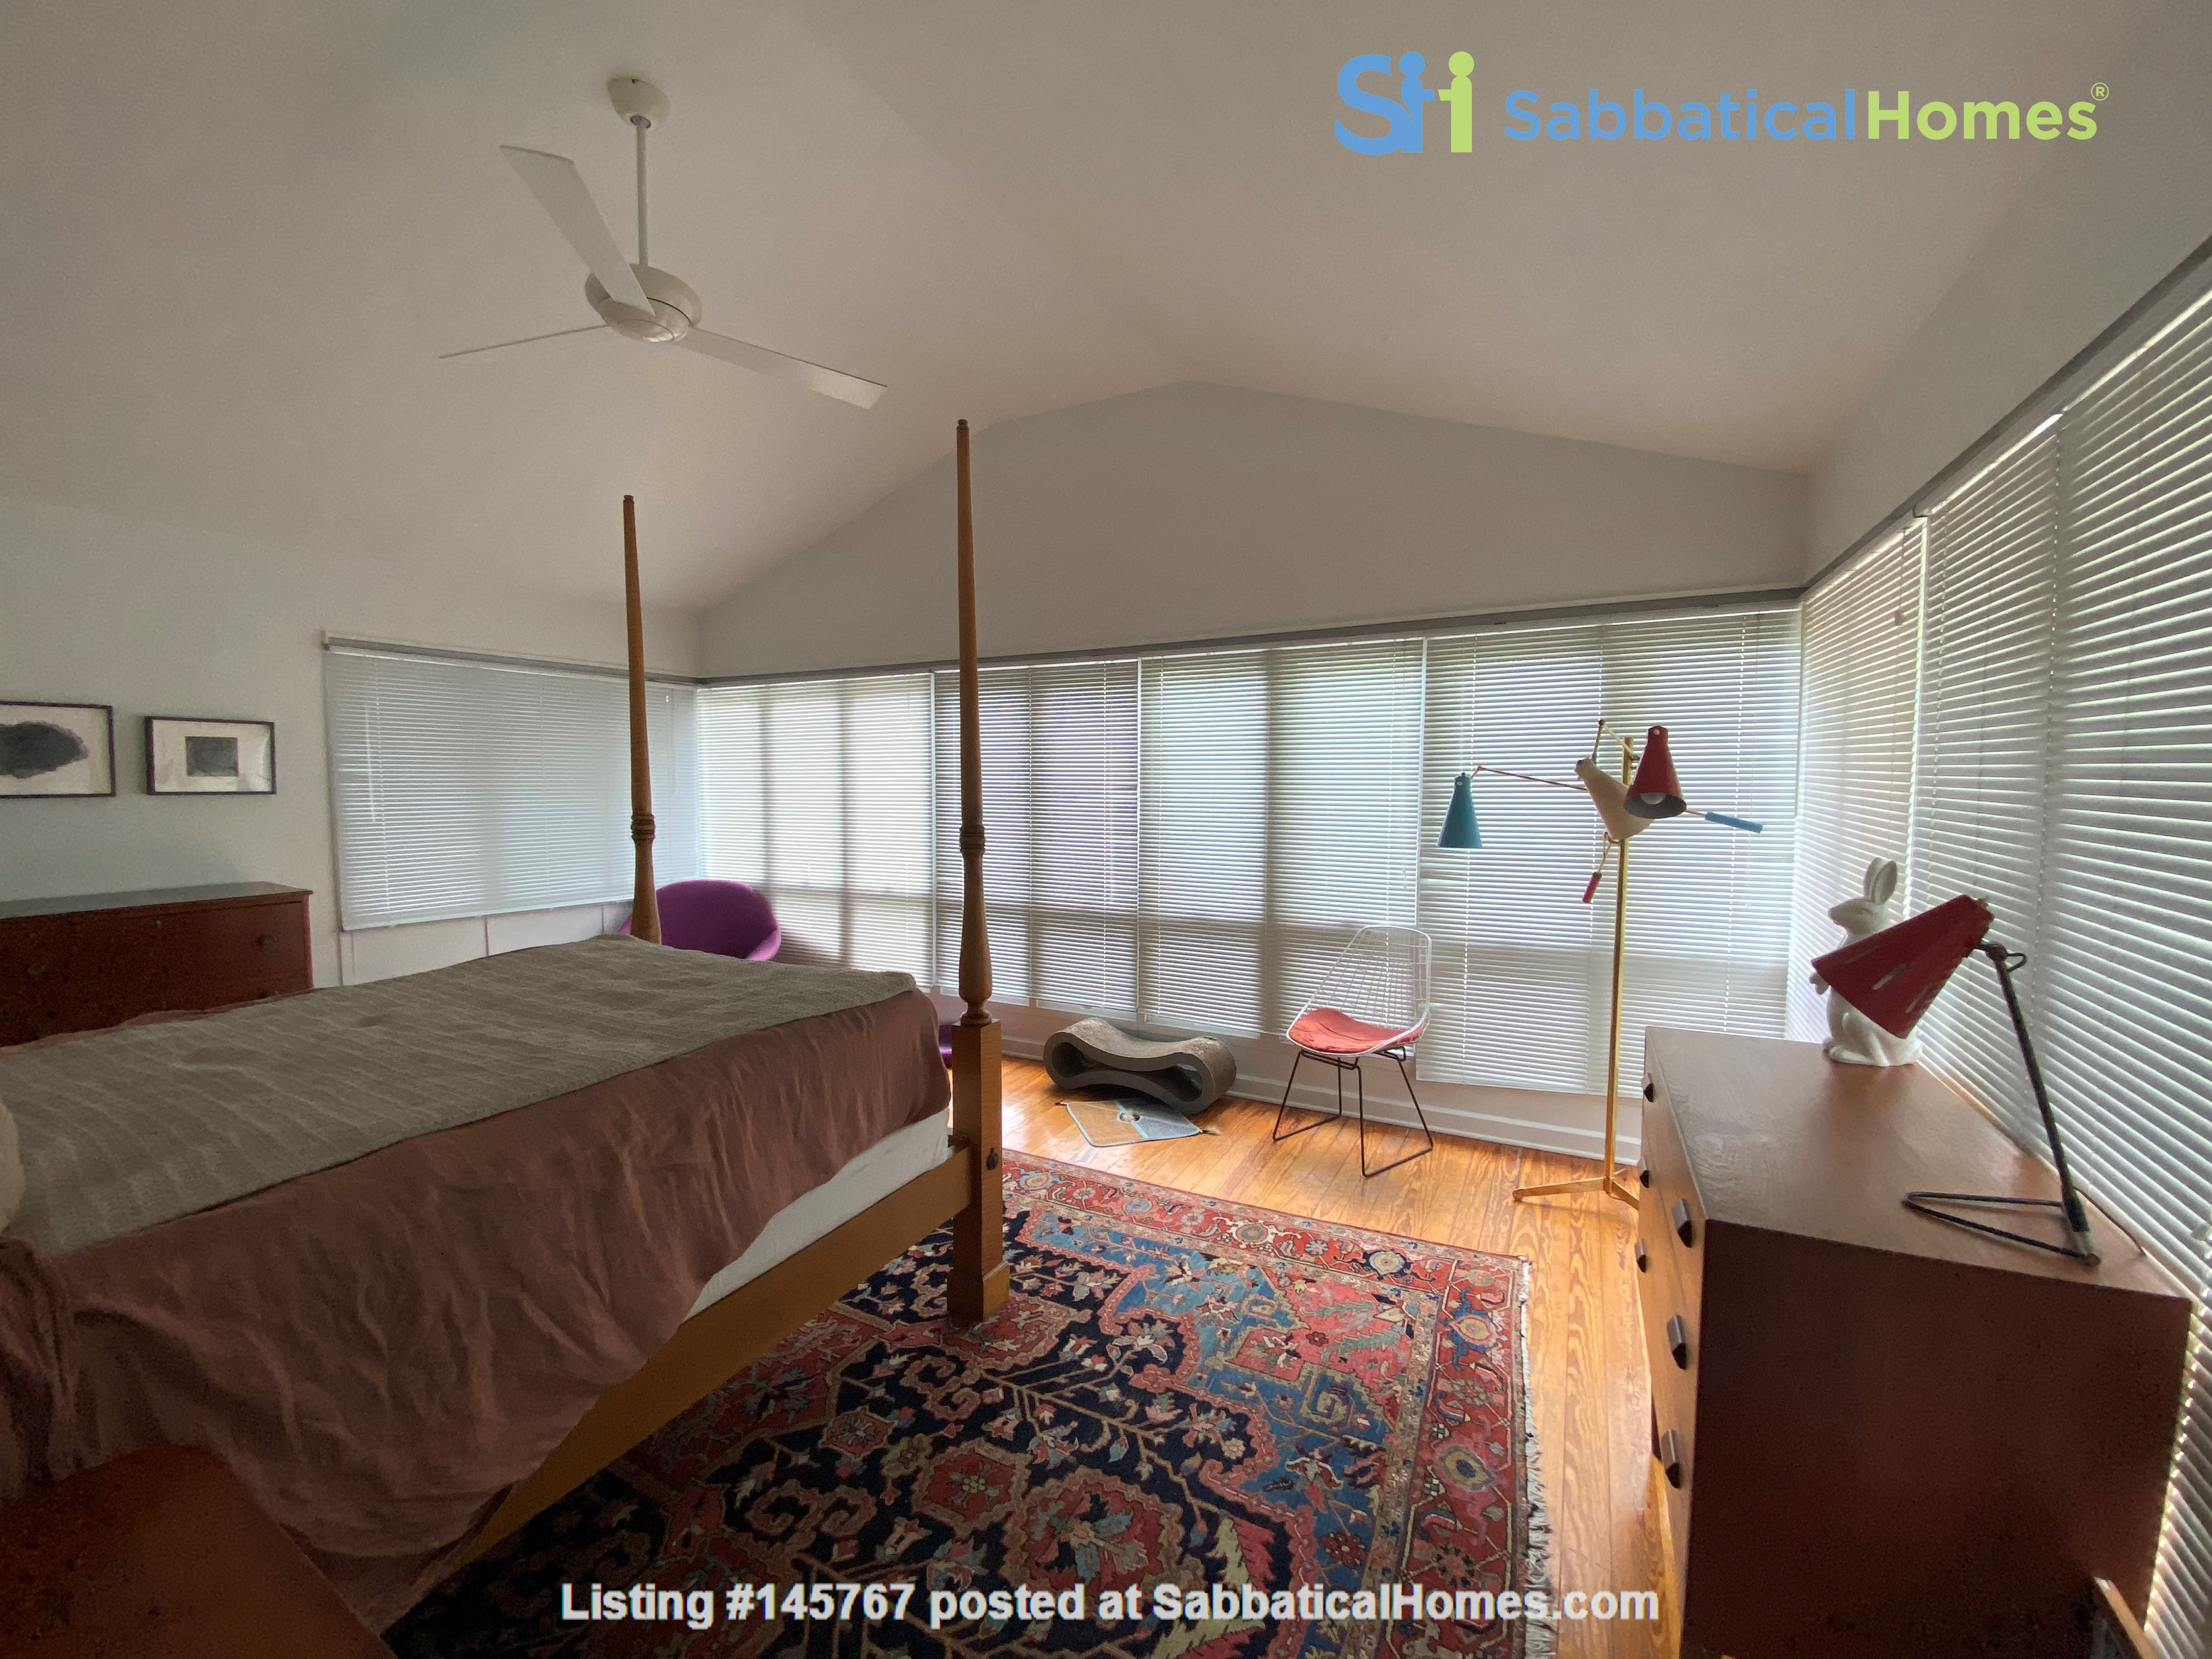 Beautiful 1920s Craftsman House (furnished, home share) Home Rental in Austin 8